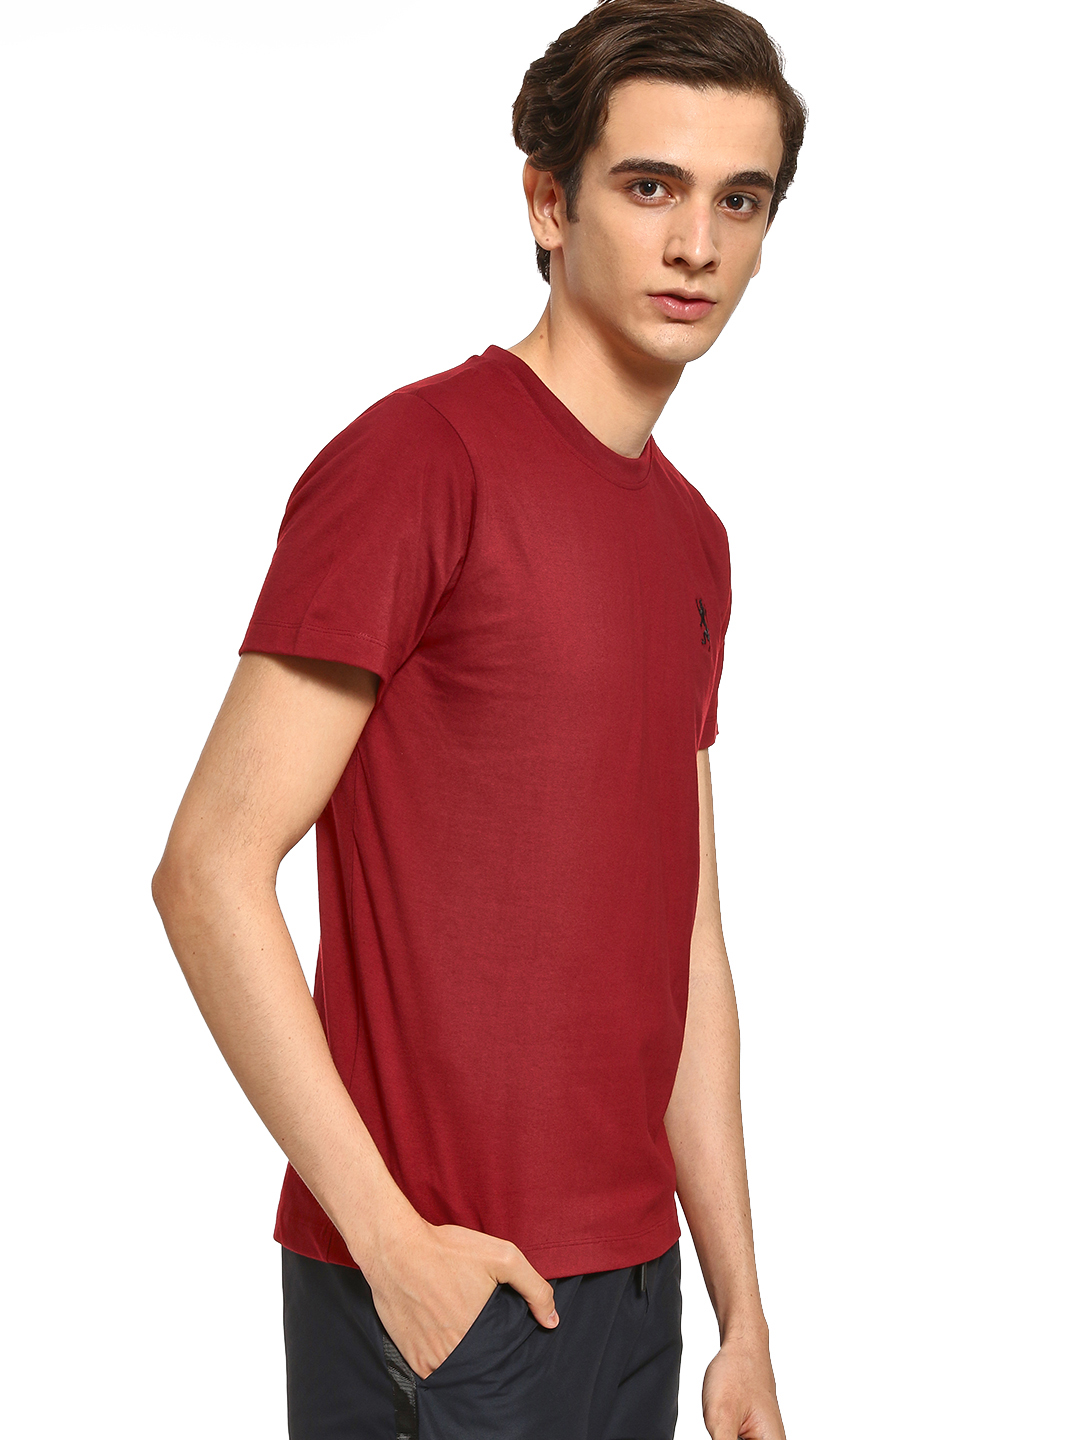 Giordano Red Basic Crew Neck T-Shirt 1